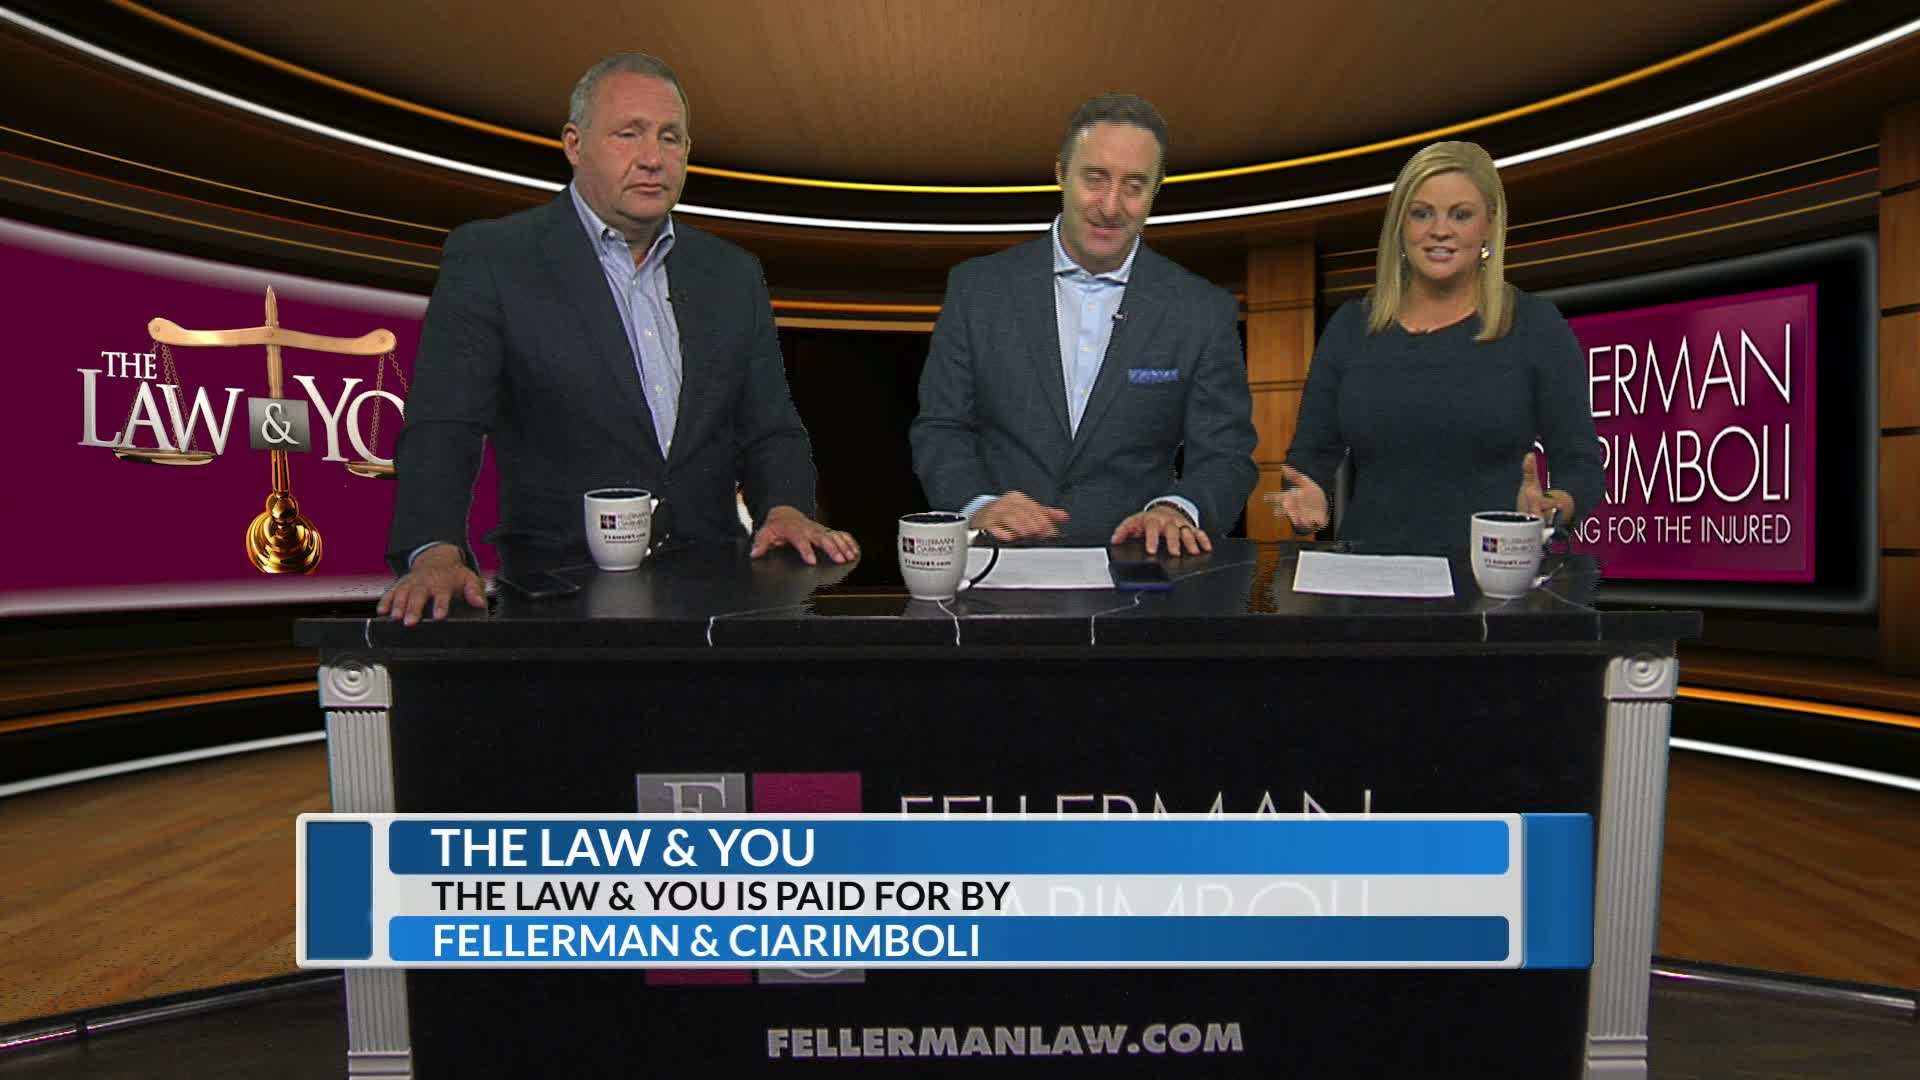 LAW AND YOU DECEMBER 16TH 2019